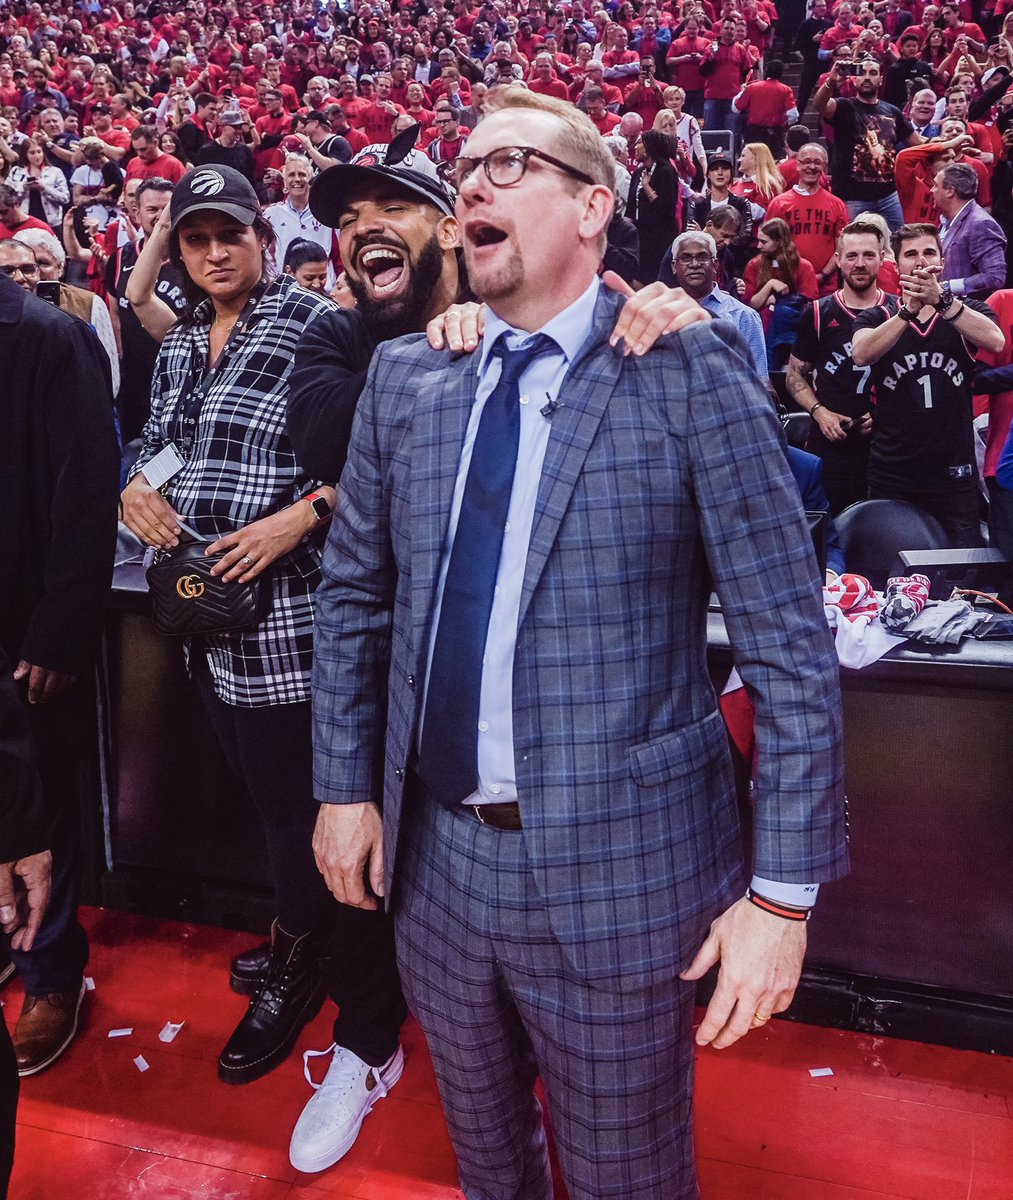 Relax and enjoy the moment, TO. #WeTheNorth